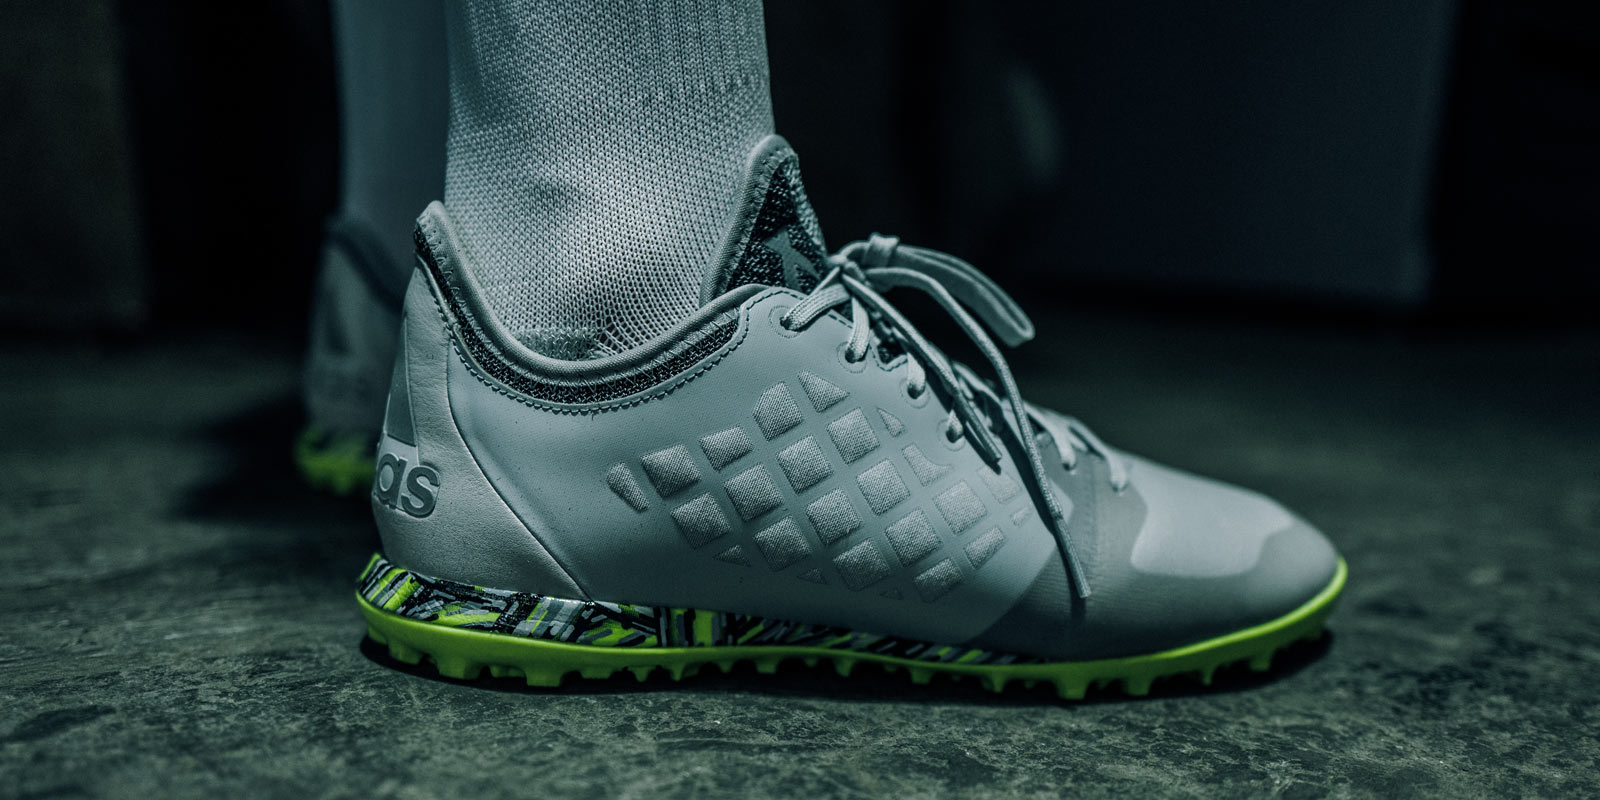 Adidas Ace and X Cage / Court City Pack